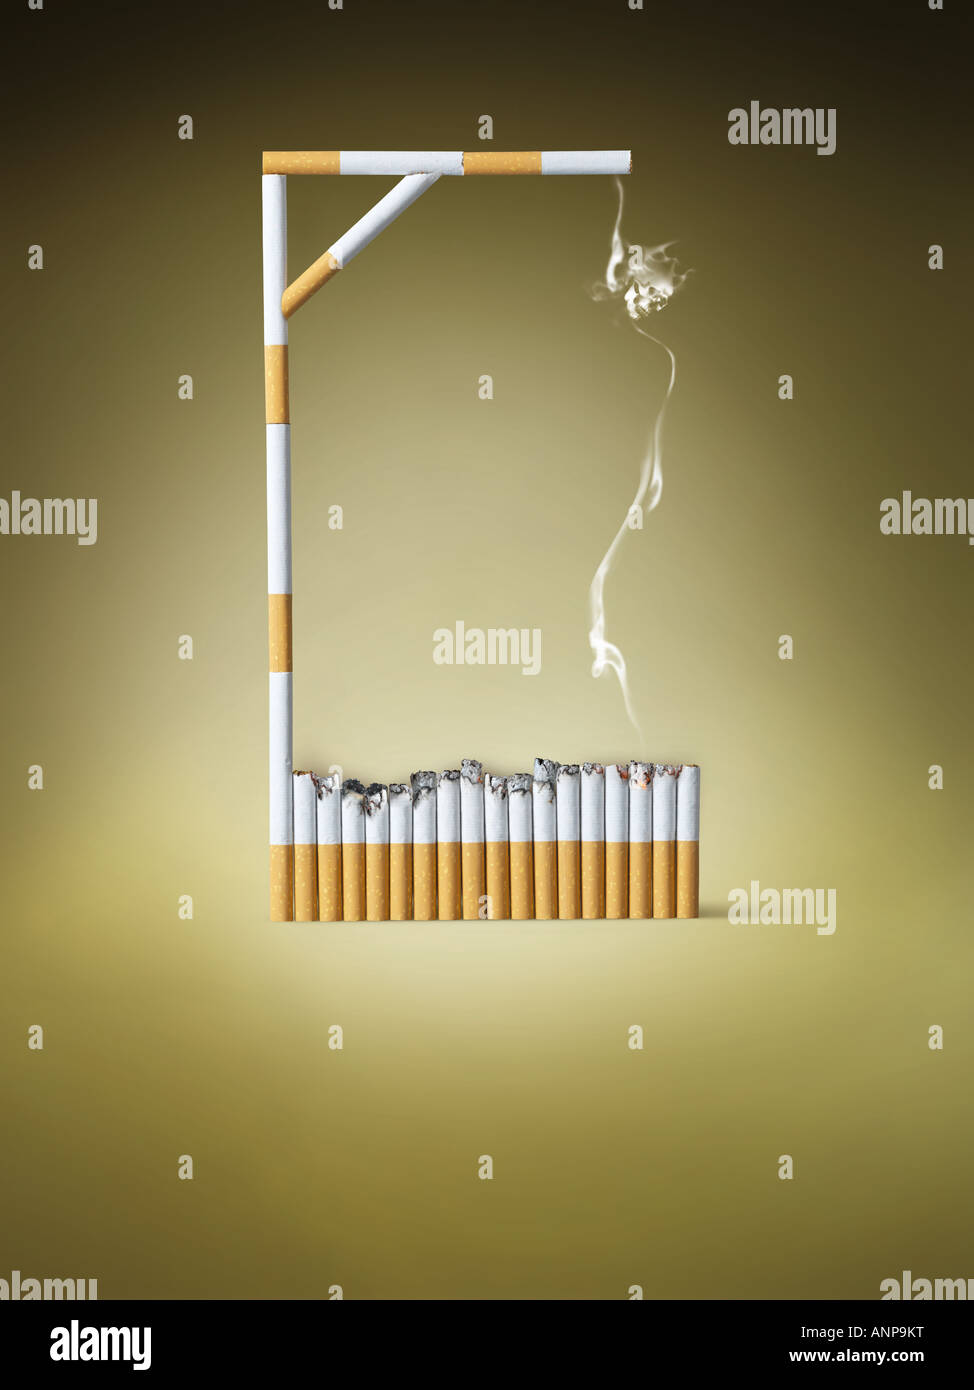 Gallows made of cigarettes - Stock Image